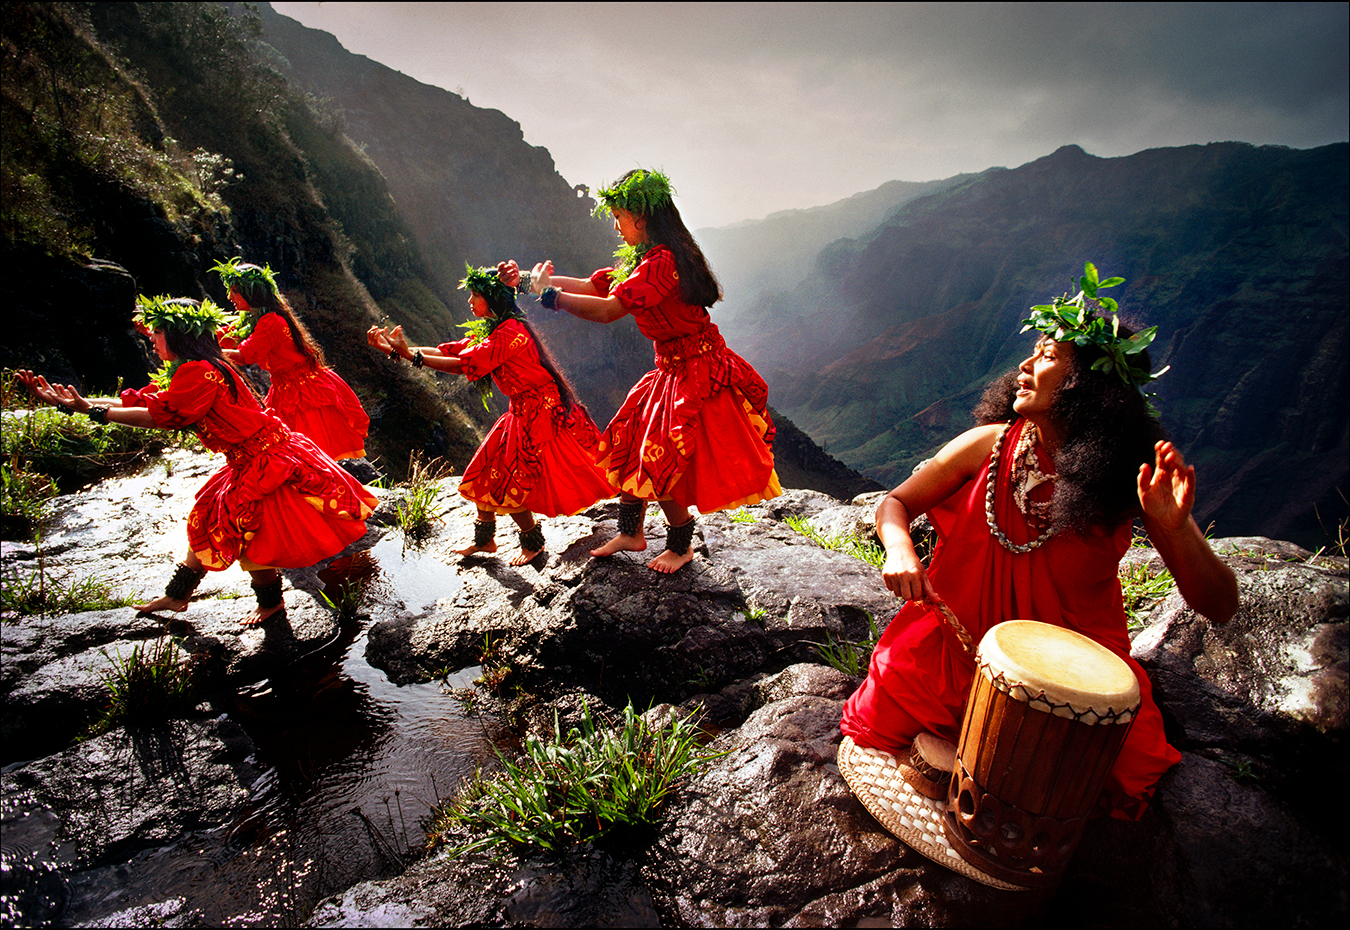 Performing the hula kahiko, or ancient Hawaiian hula, dancers blend simple footwork with hand gestures to illustrate the myths and histories of their families on the rim of the Waimea Canyon on Kauai. | © Steve Raymer / National Geographic Creative